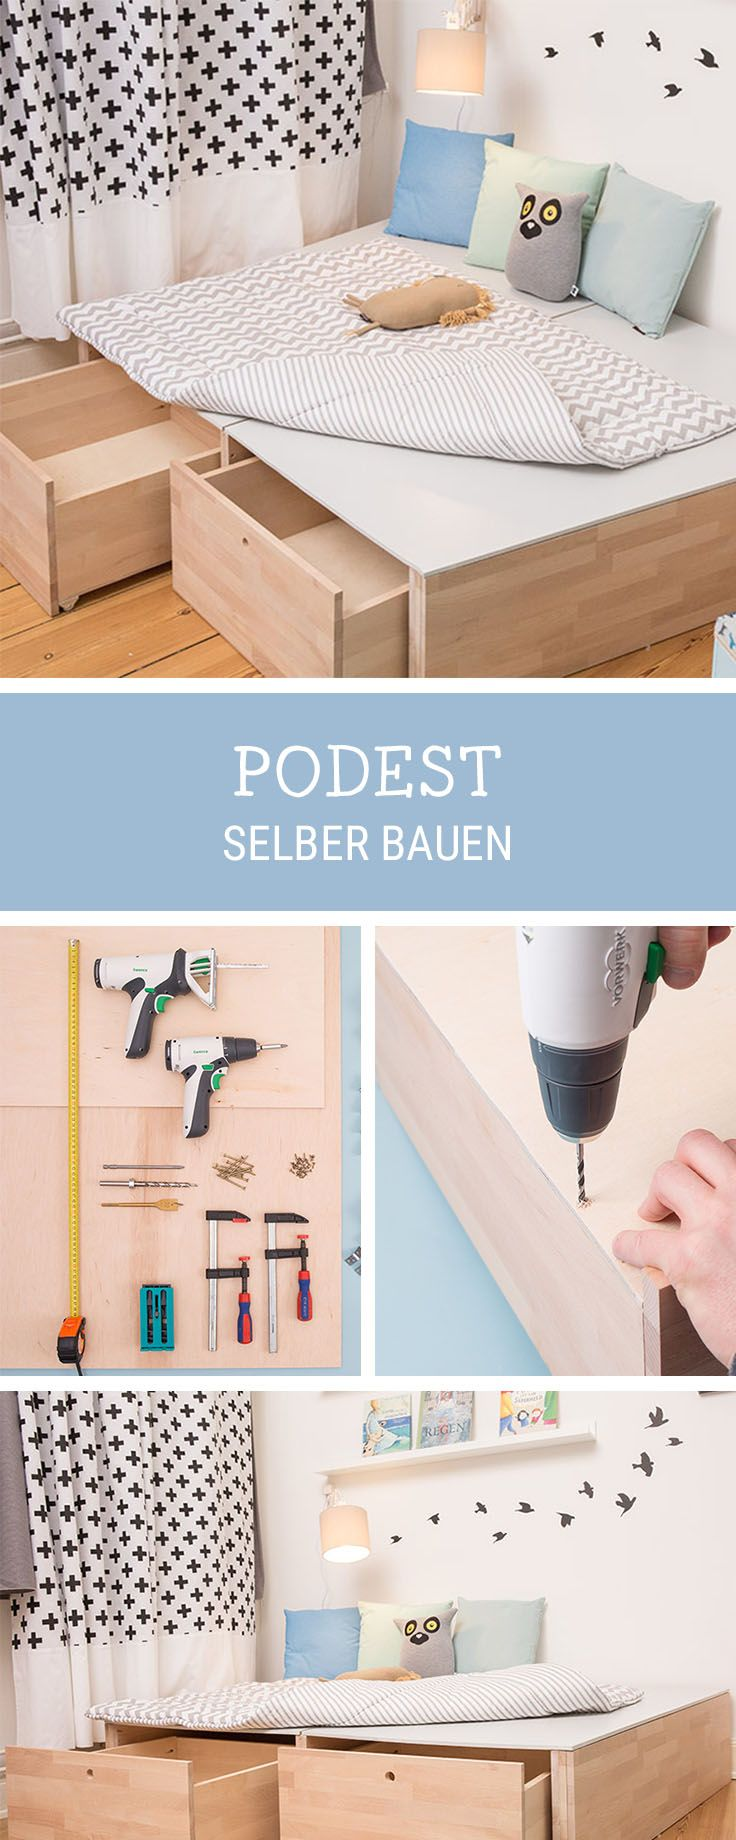 die 15 besten ideen zu podest auf pinterest podest kinderzimmer podest bauen und podestbett. Black Bedroom Furniture Sets. Home Design Ideas